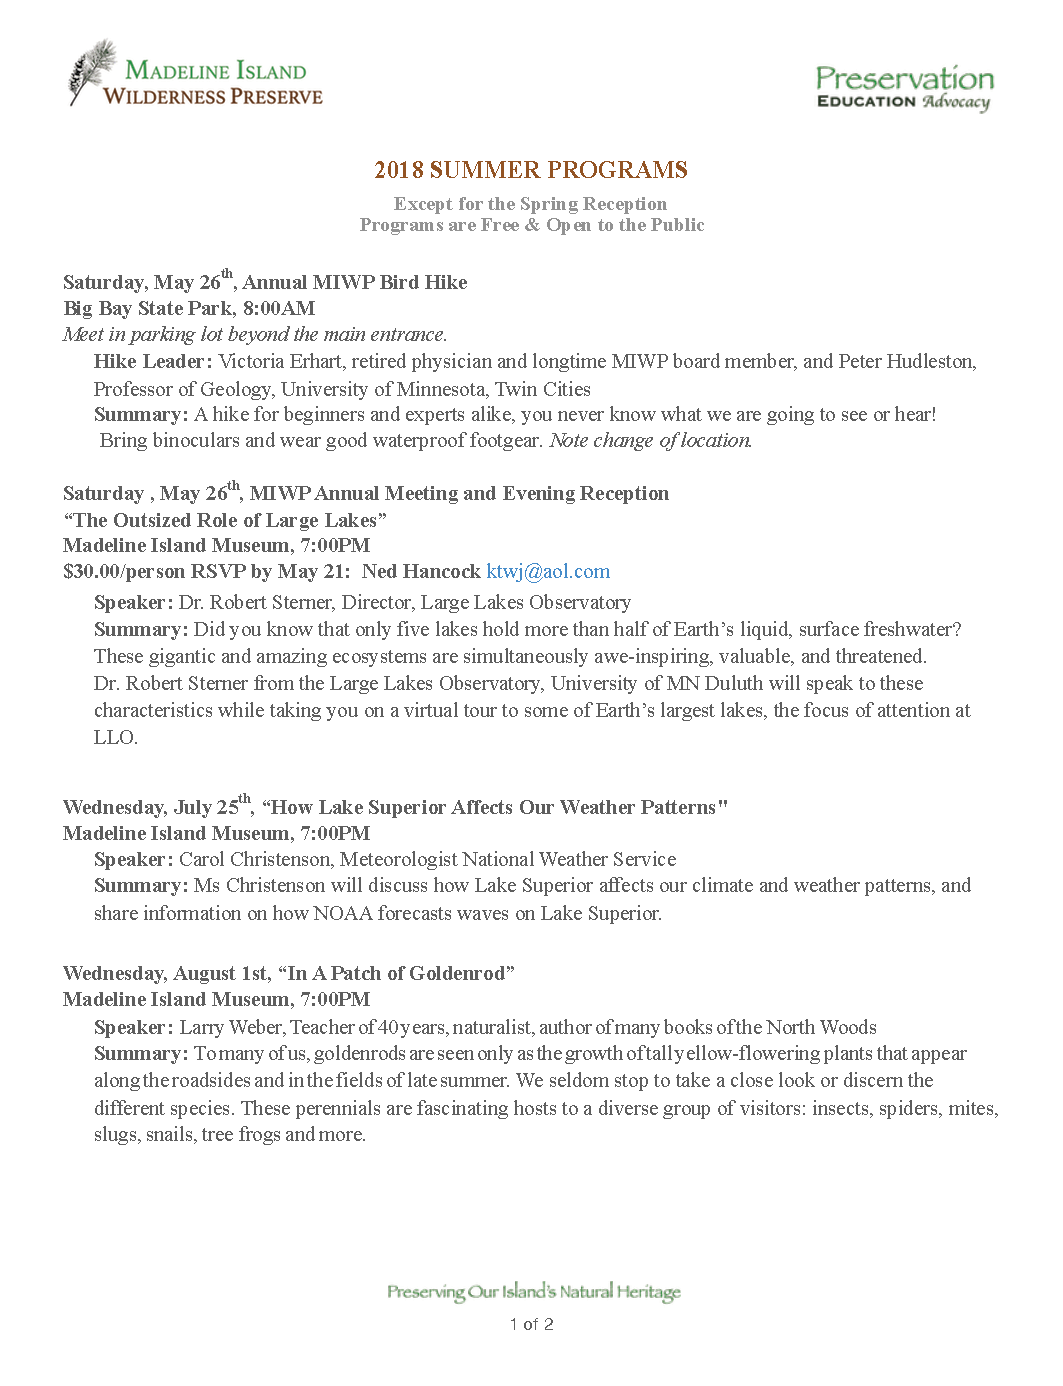 MIWP 2018 Event Schedule with Logos_Page_1.png